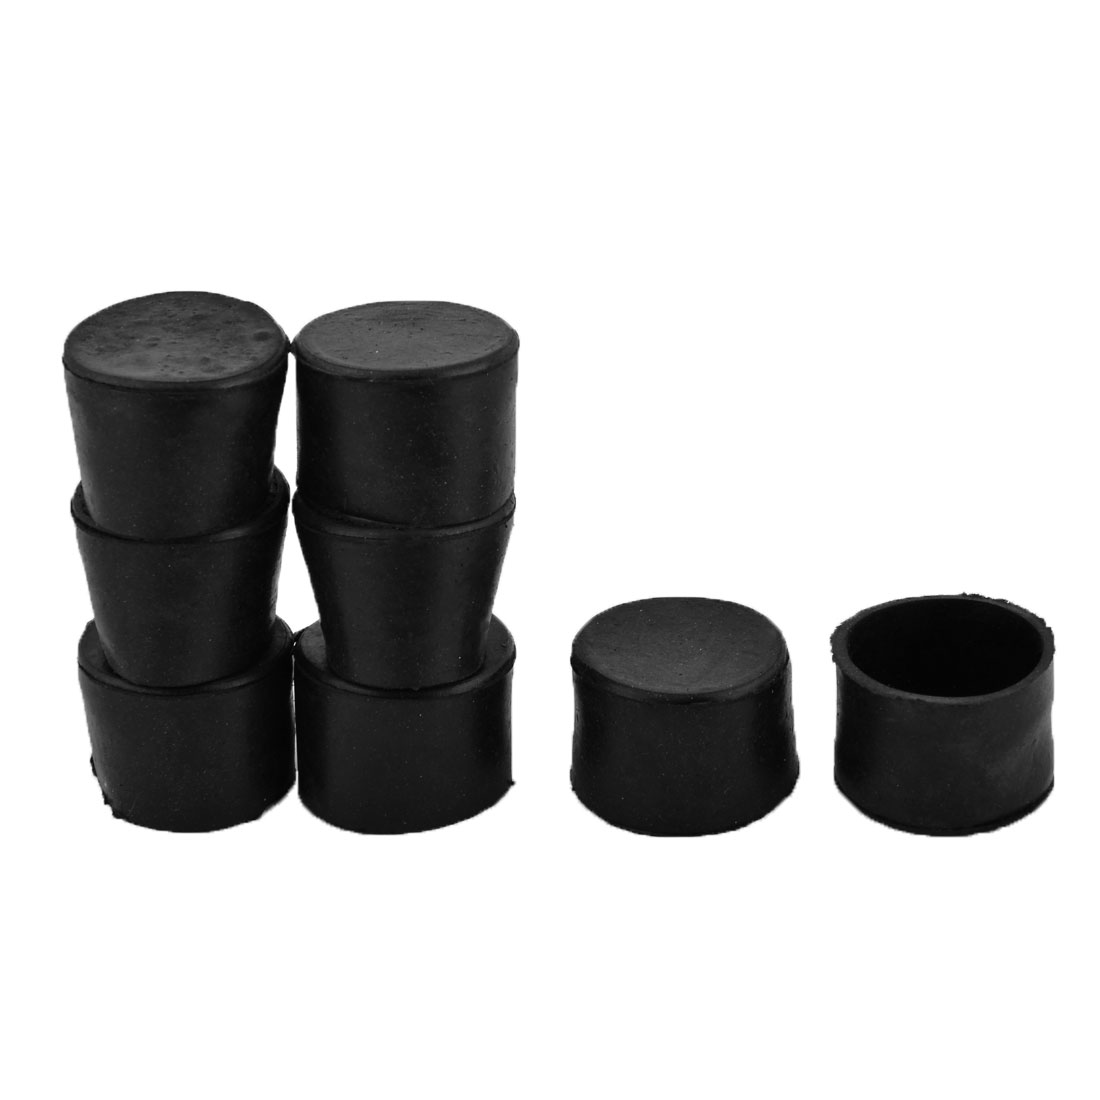 Furniture Rubber Round Leg Foot Cover Holder Protector Black 45mm Inner Dia 8pcs